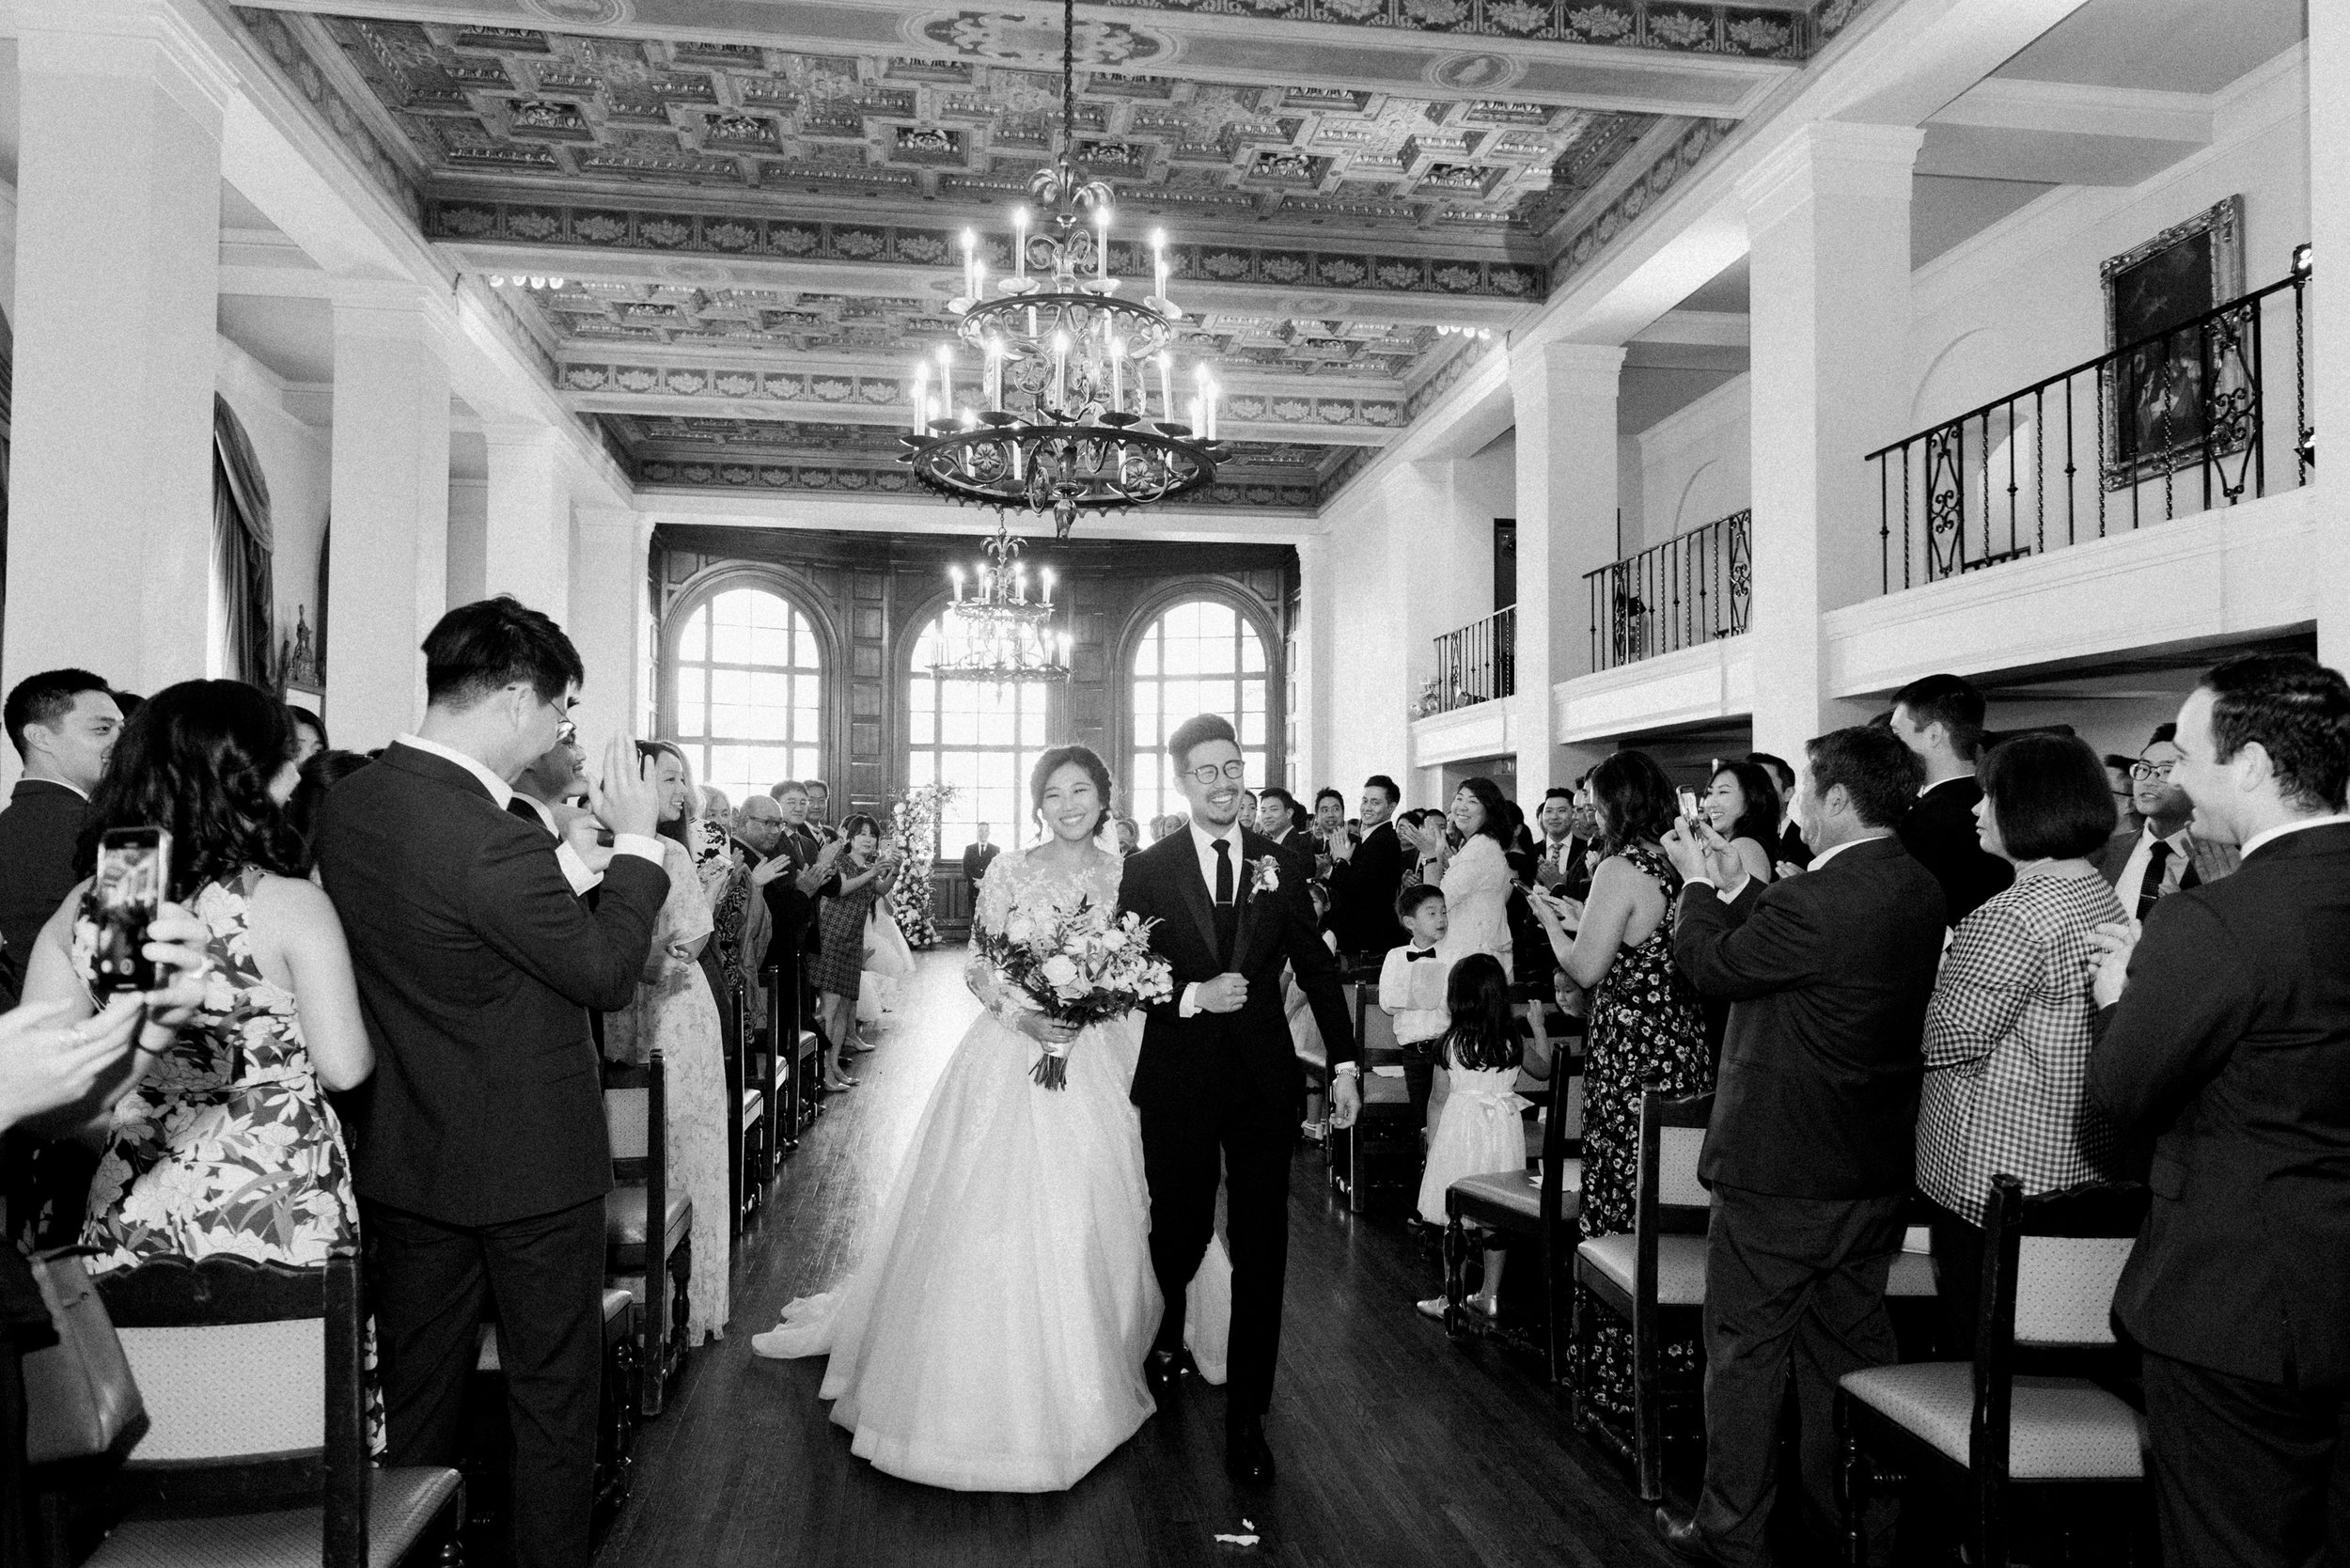 Bonphotage California and Chicago Fine Art Wedding Photography